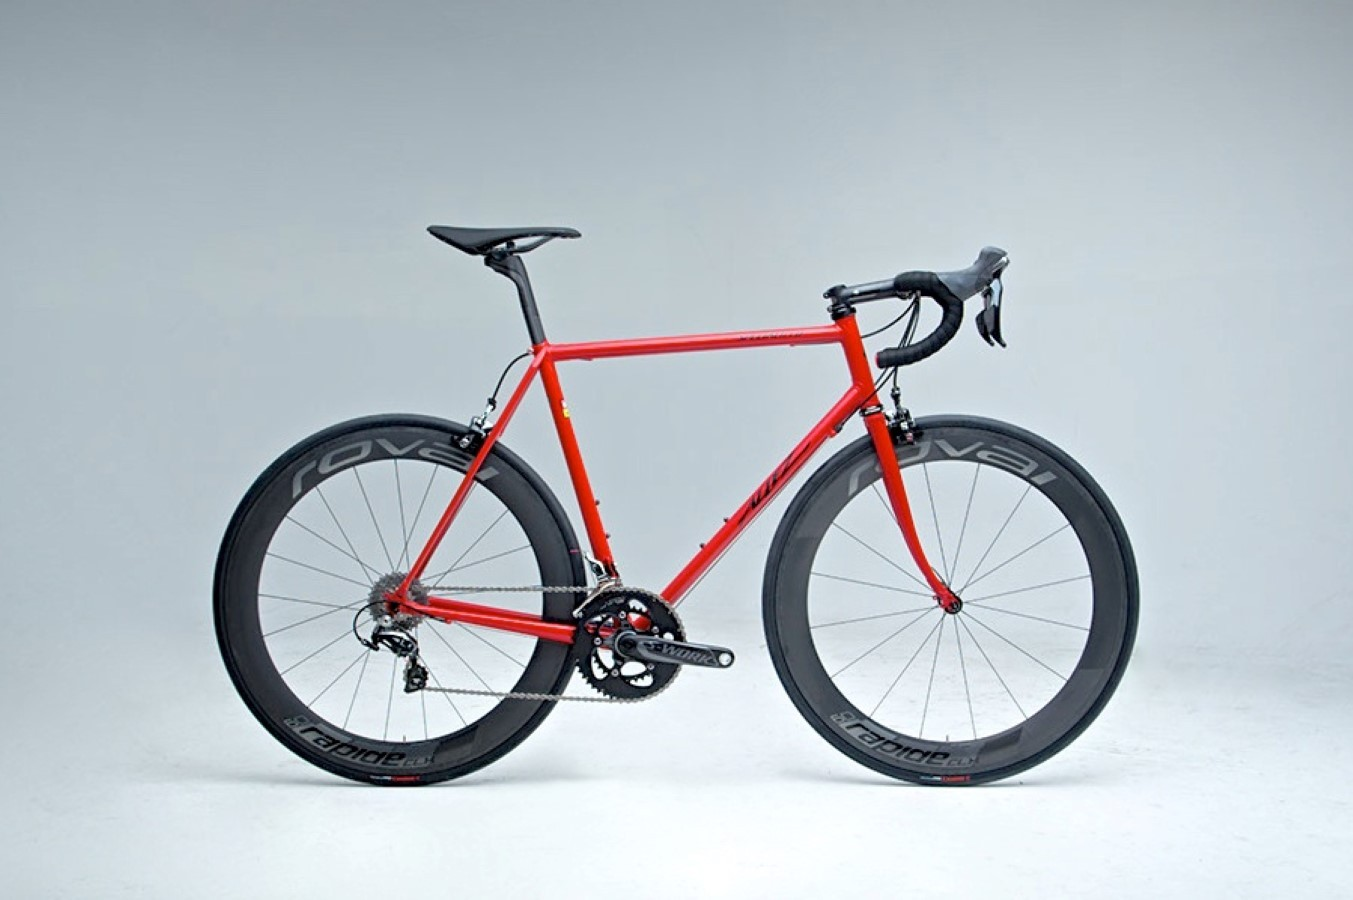 For its 40th anniversary, Specialized has produced 74 limited edition lugged steel Allez framesets